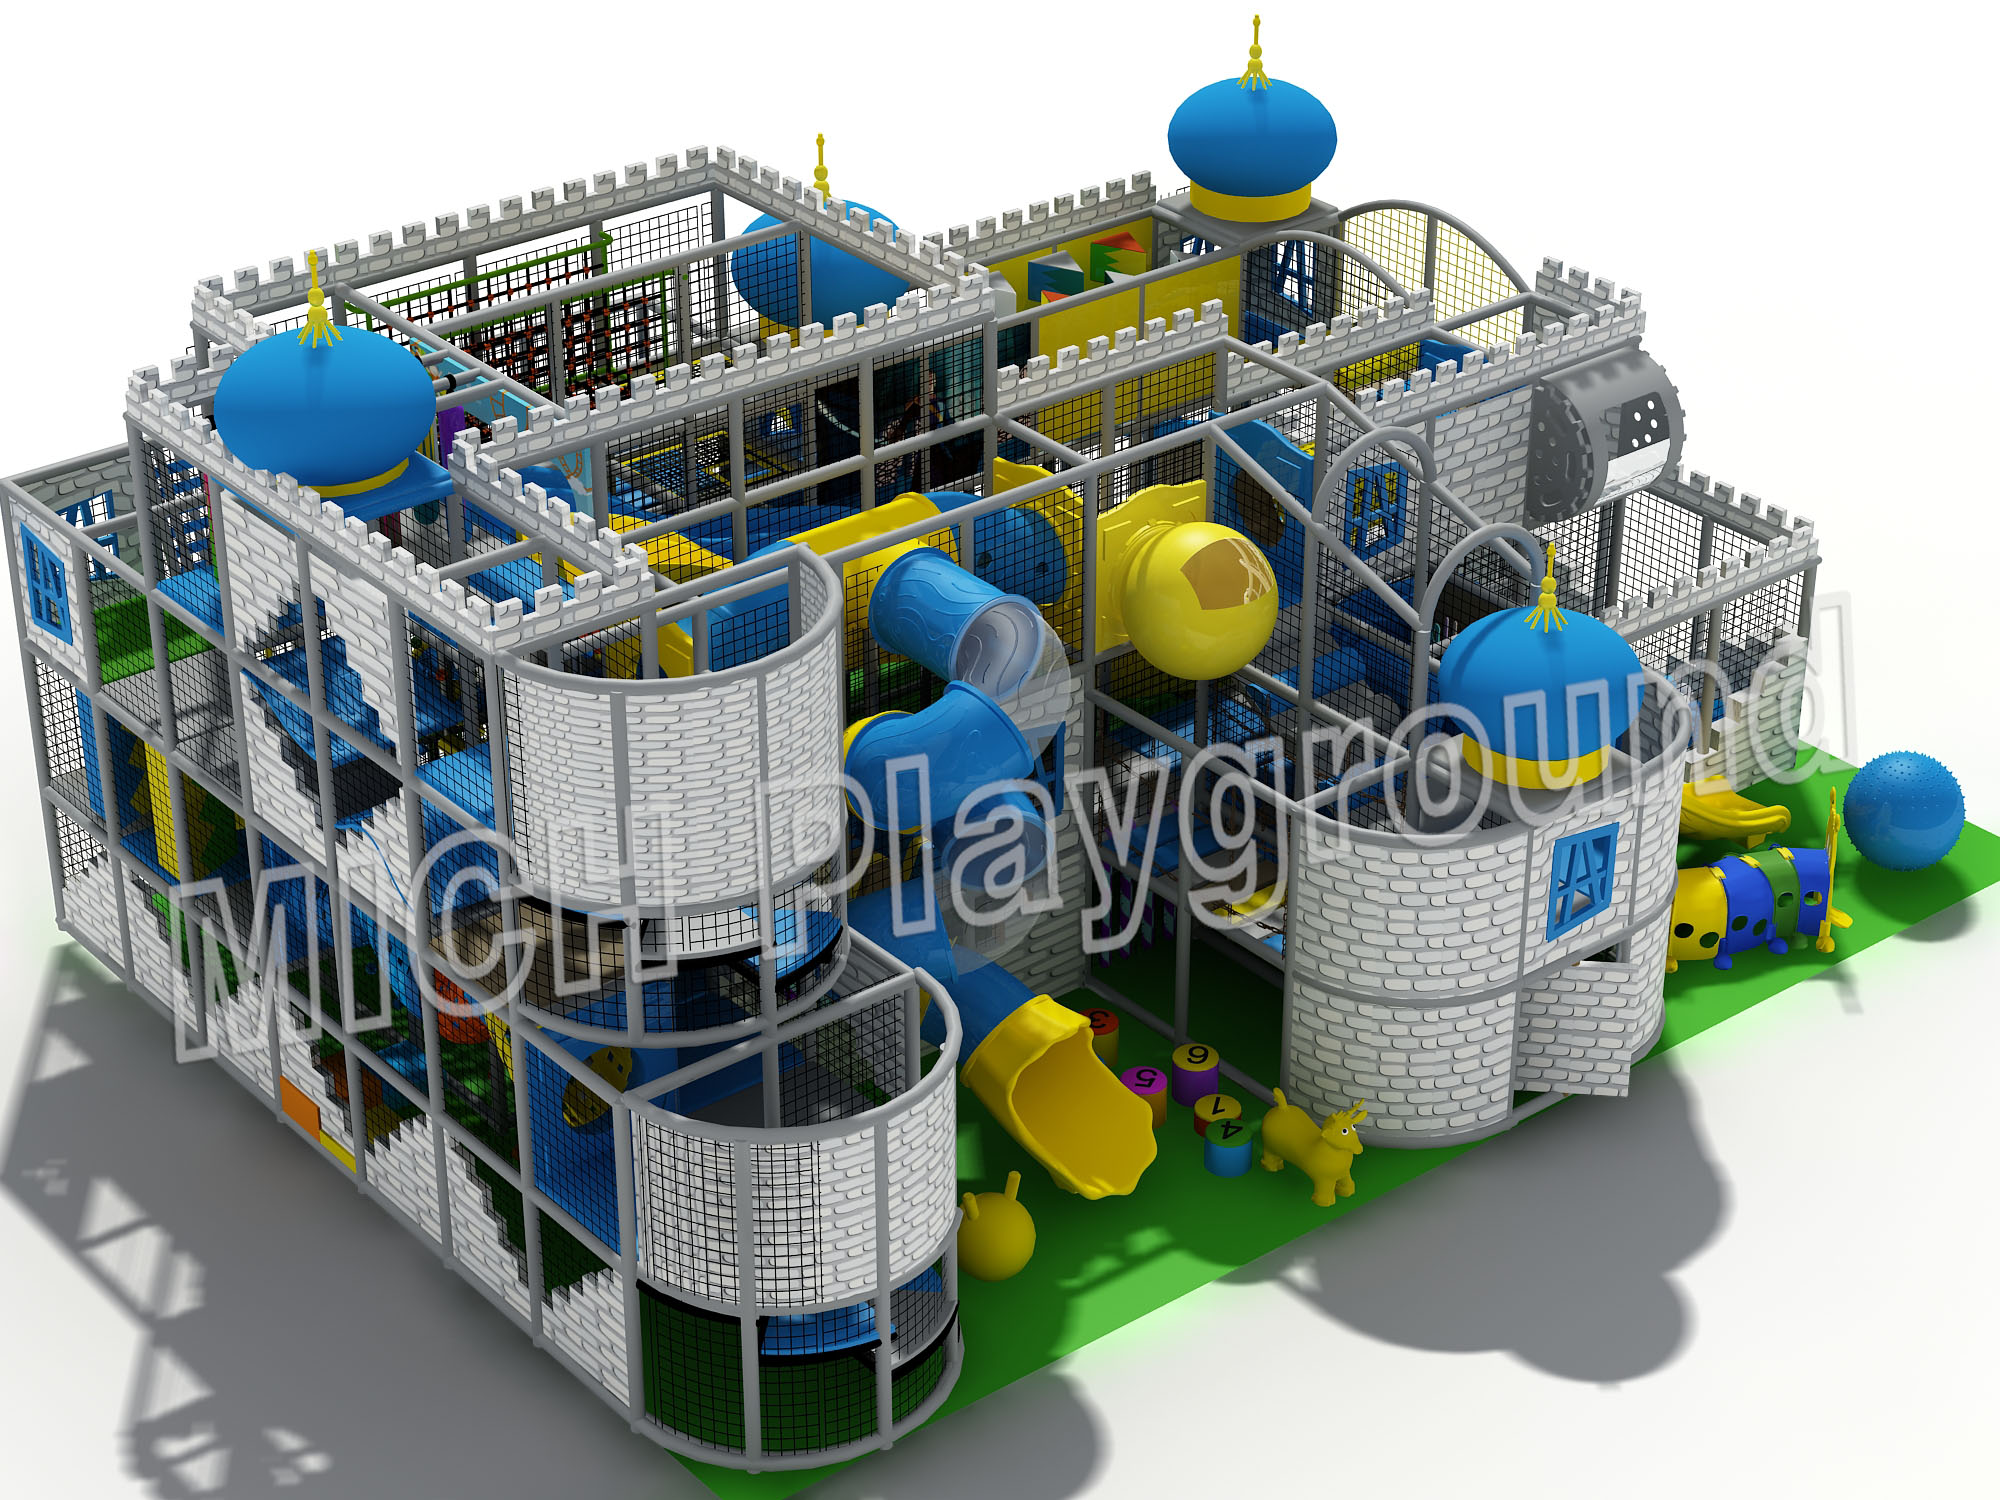 Mich Funny Indoor Amusement Playground 6642A